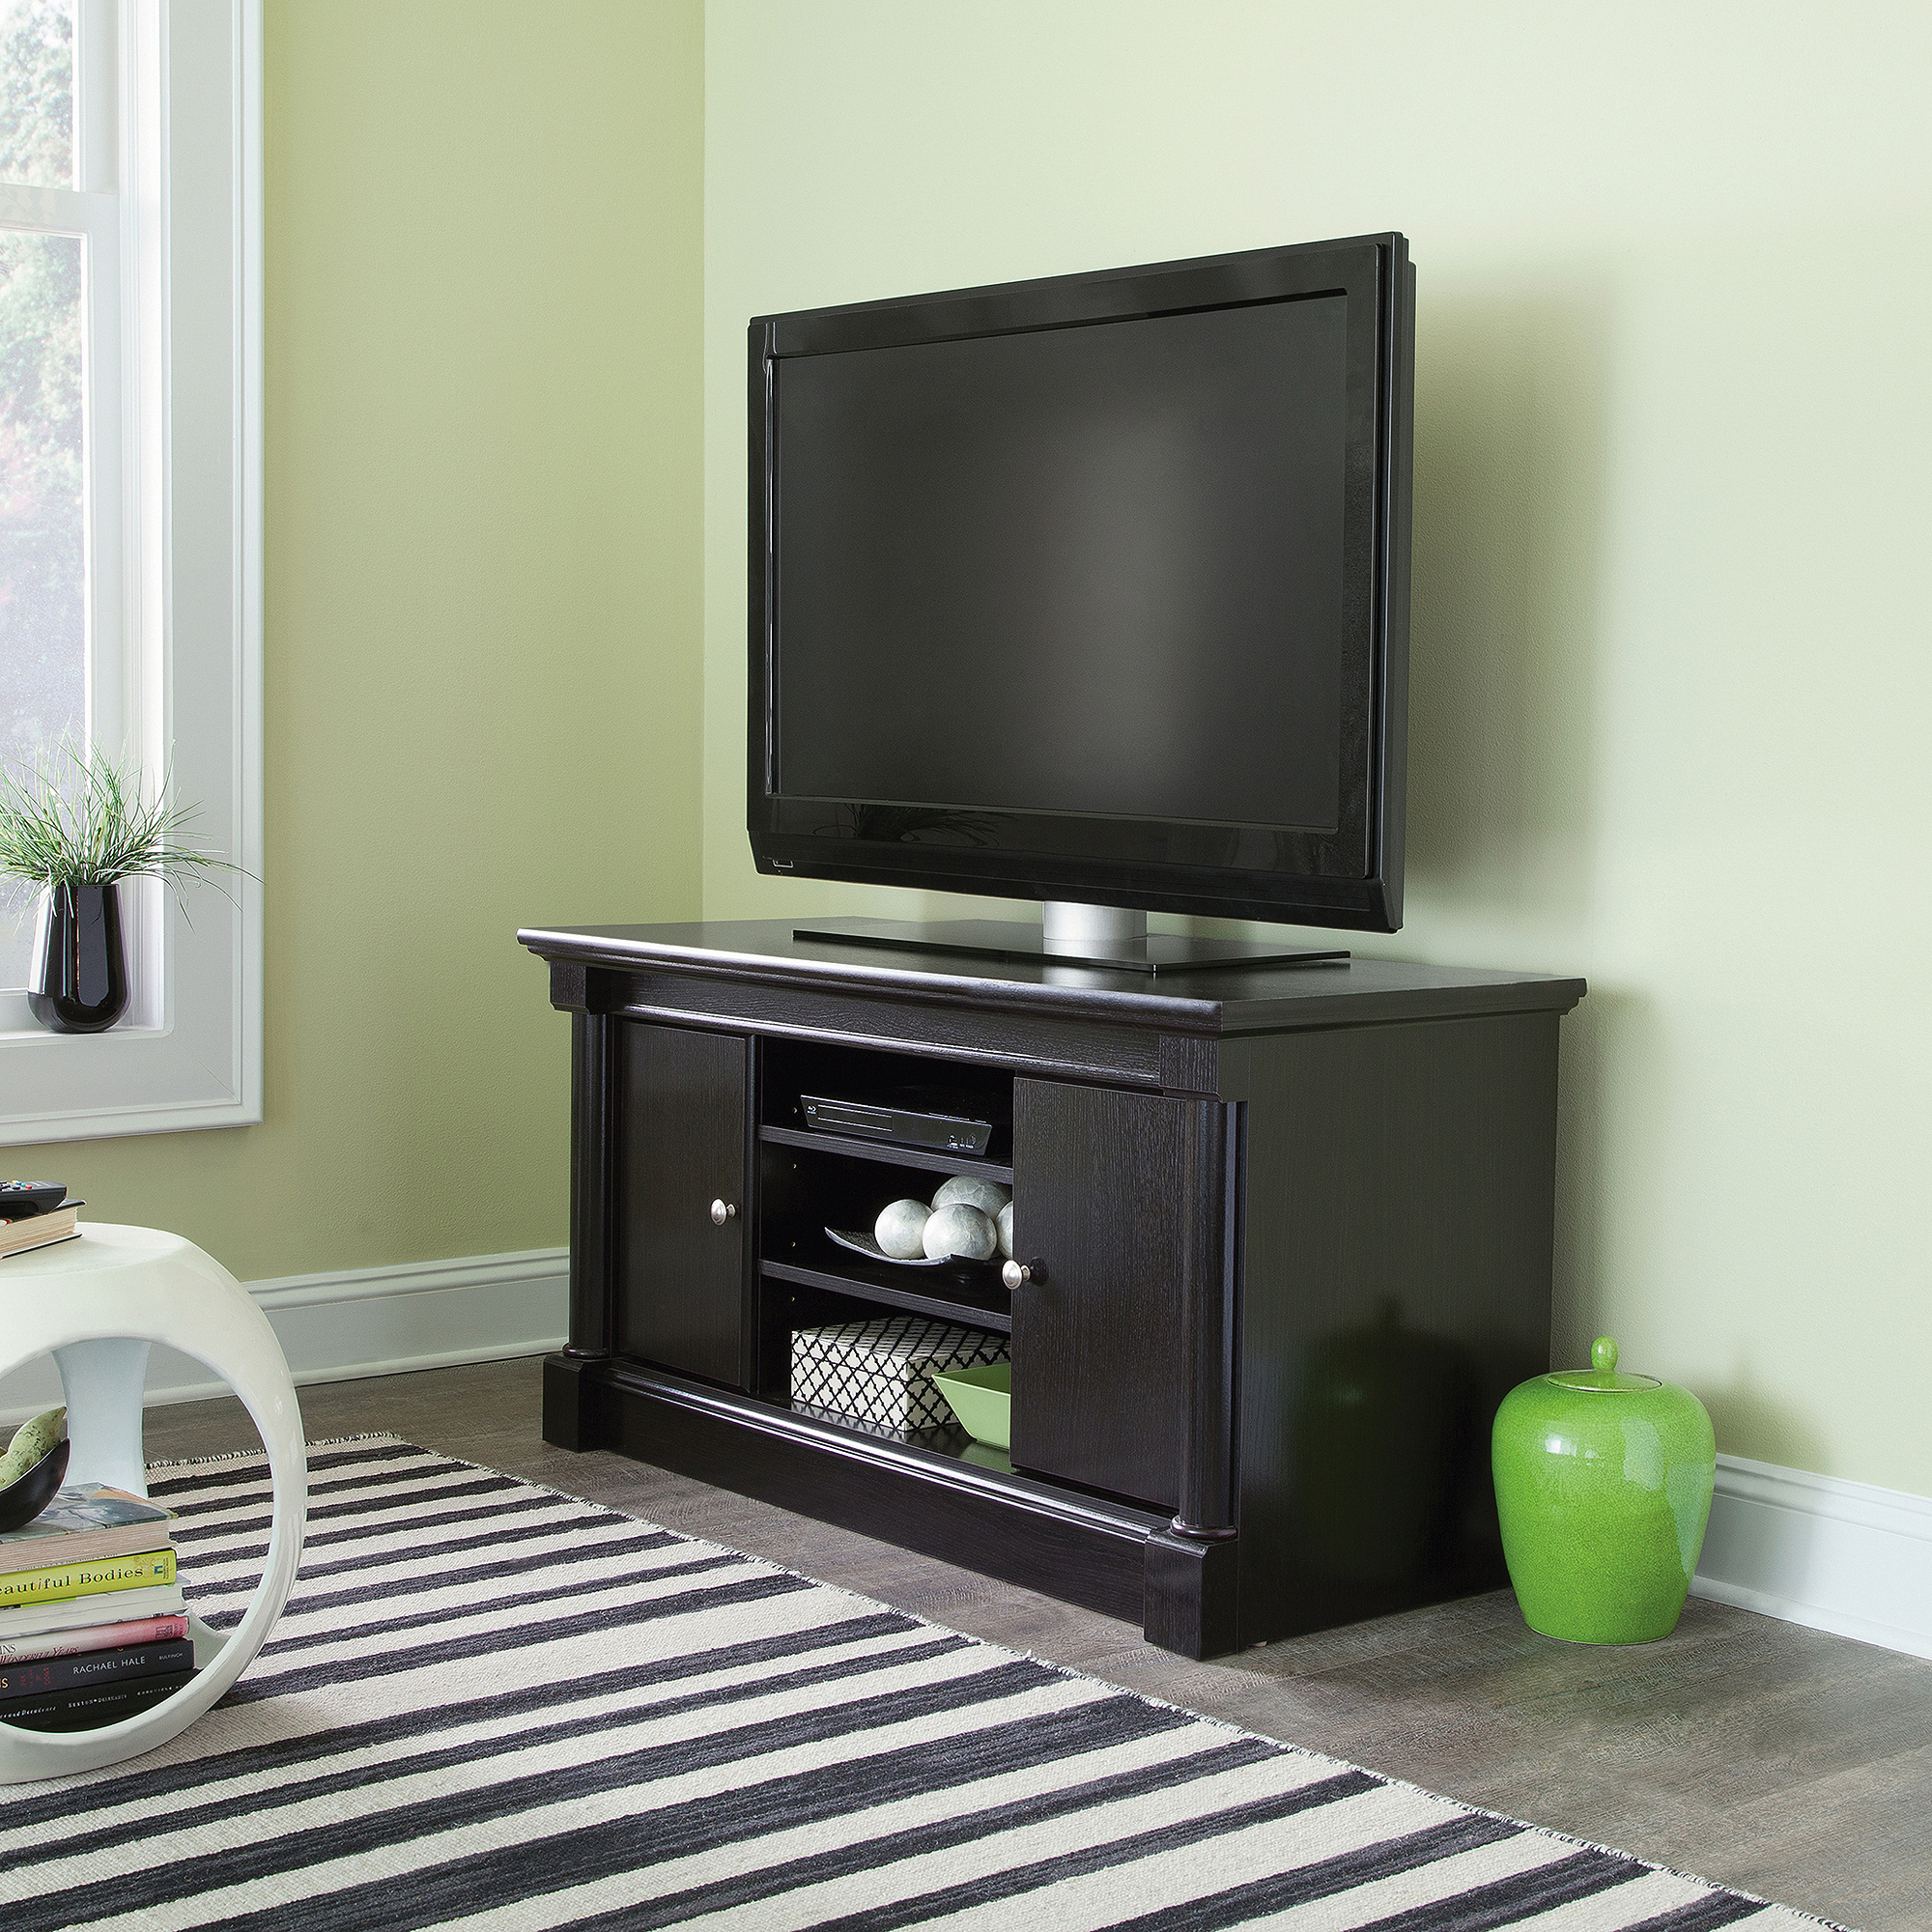 Sauder Palladia Waxed Black Panel Tv Stand For Tvs Up To 50